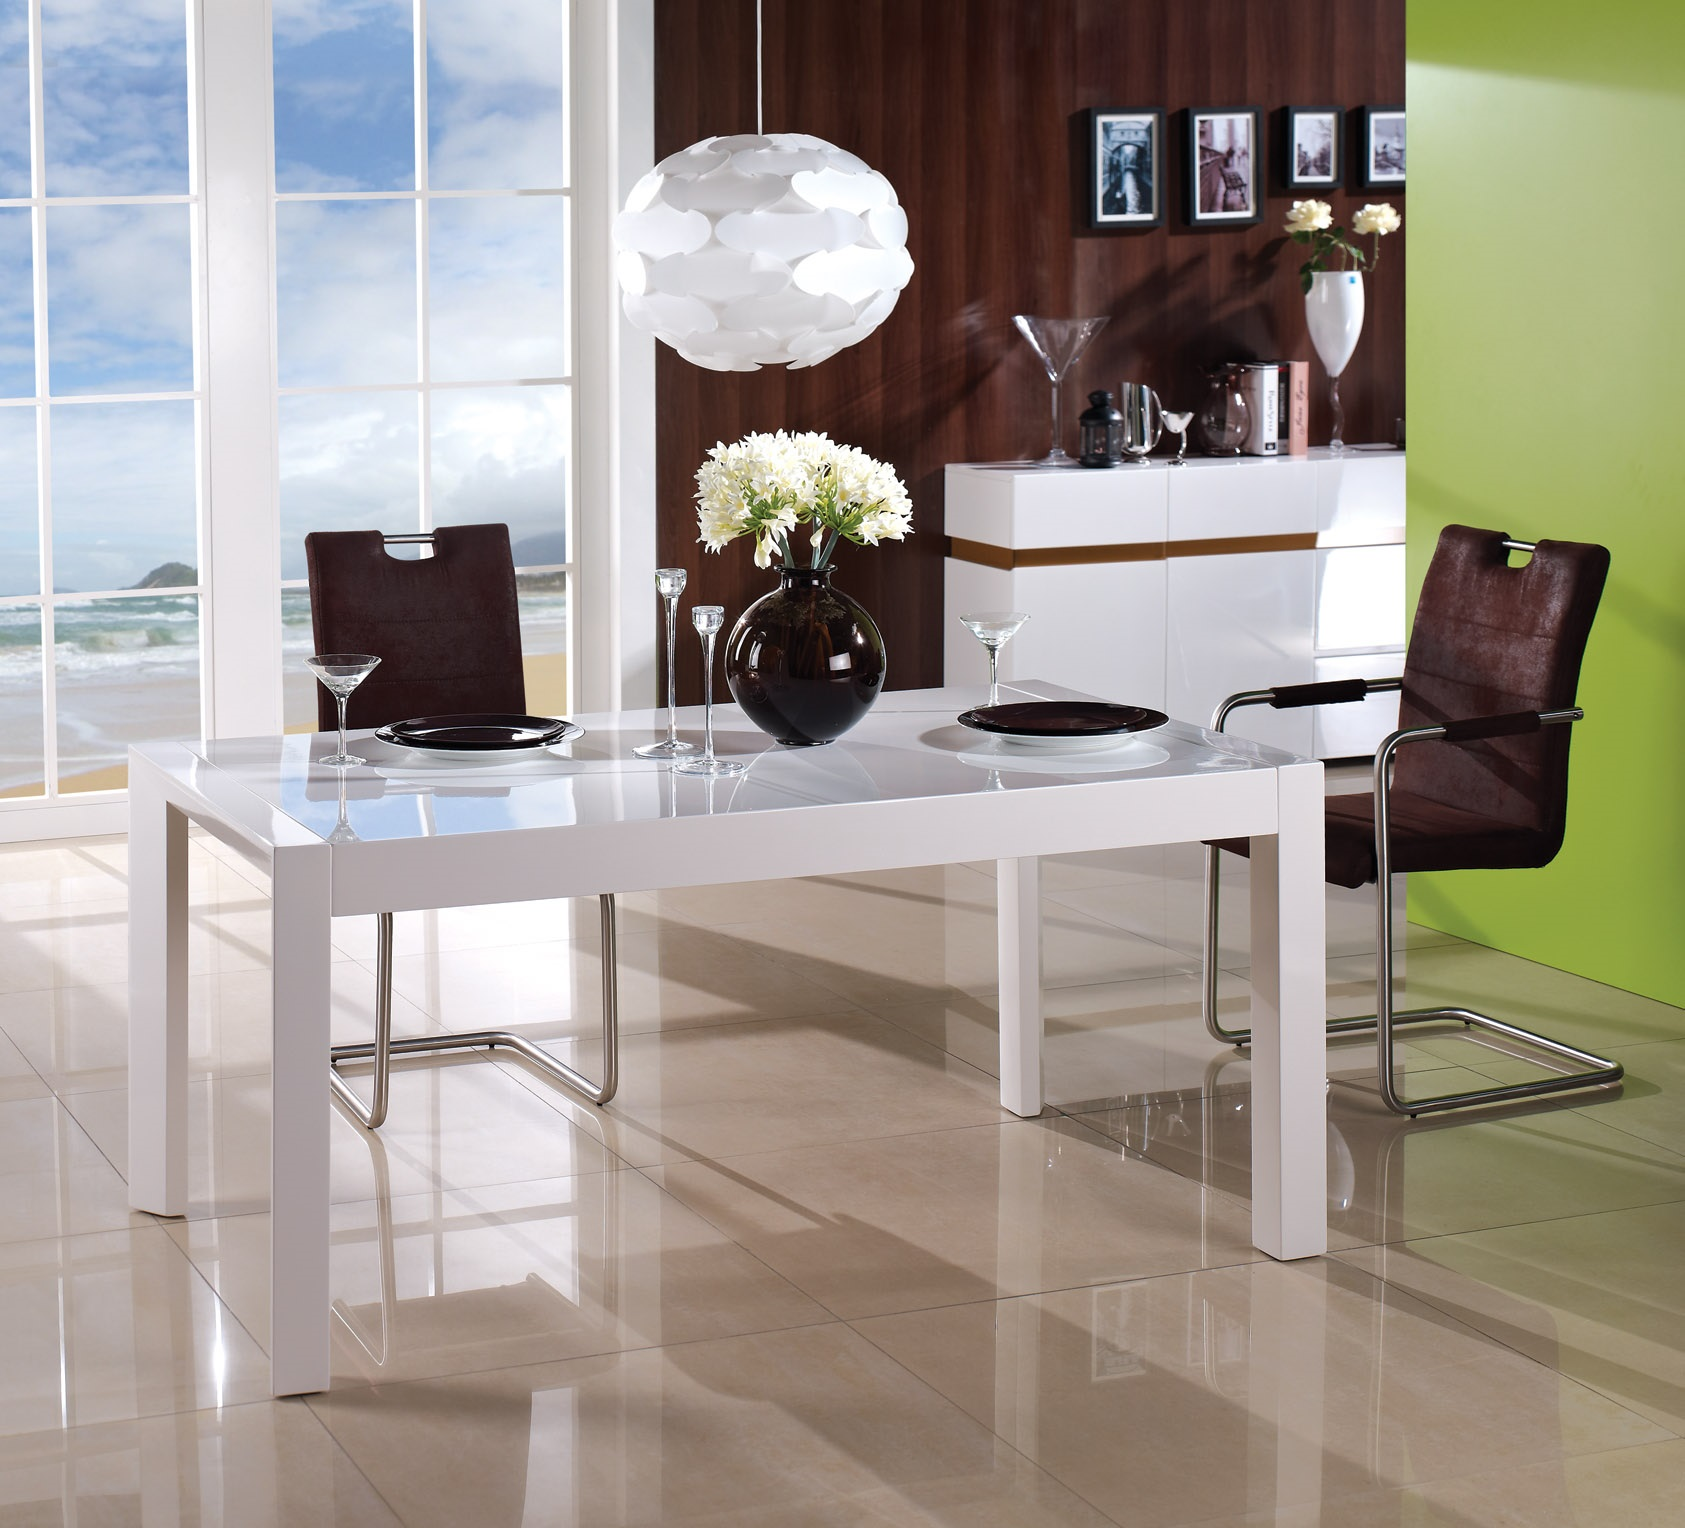 Table de salle manger design extensible en bois blanc braga for Table de salle a manger design